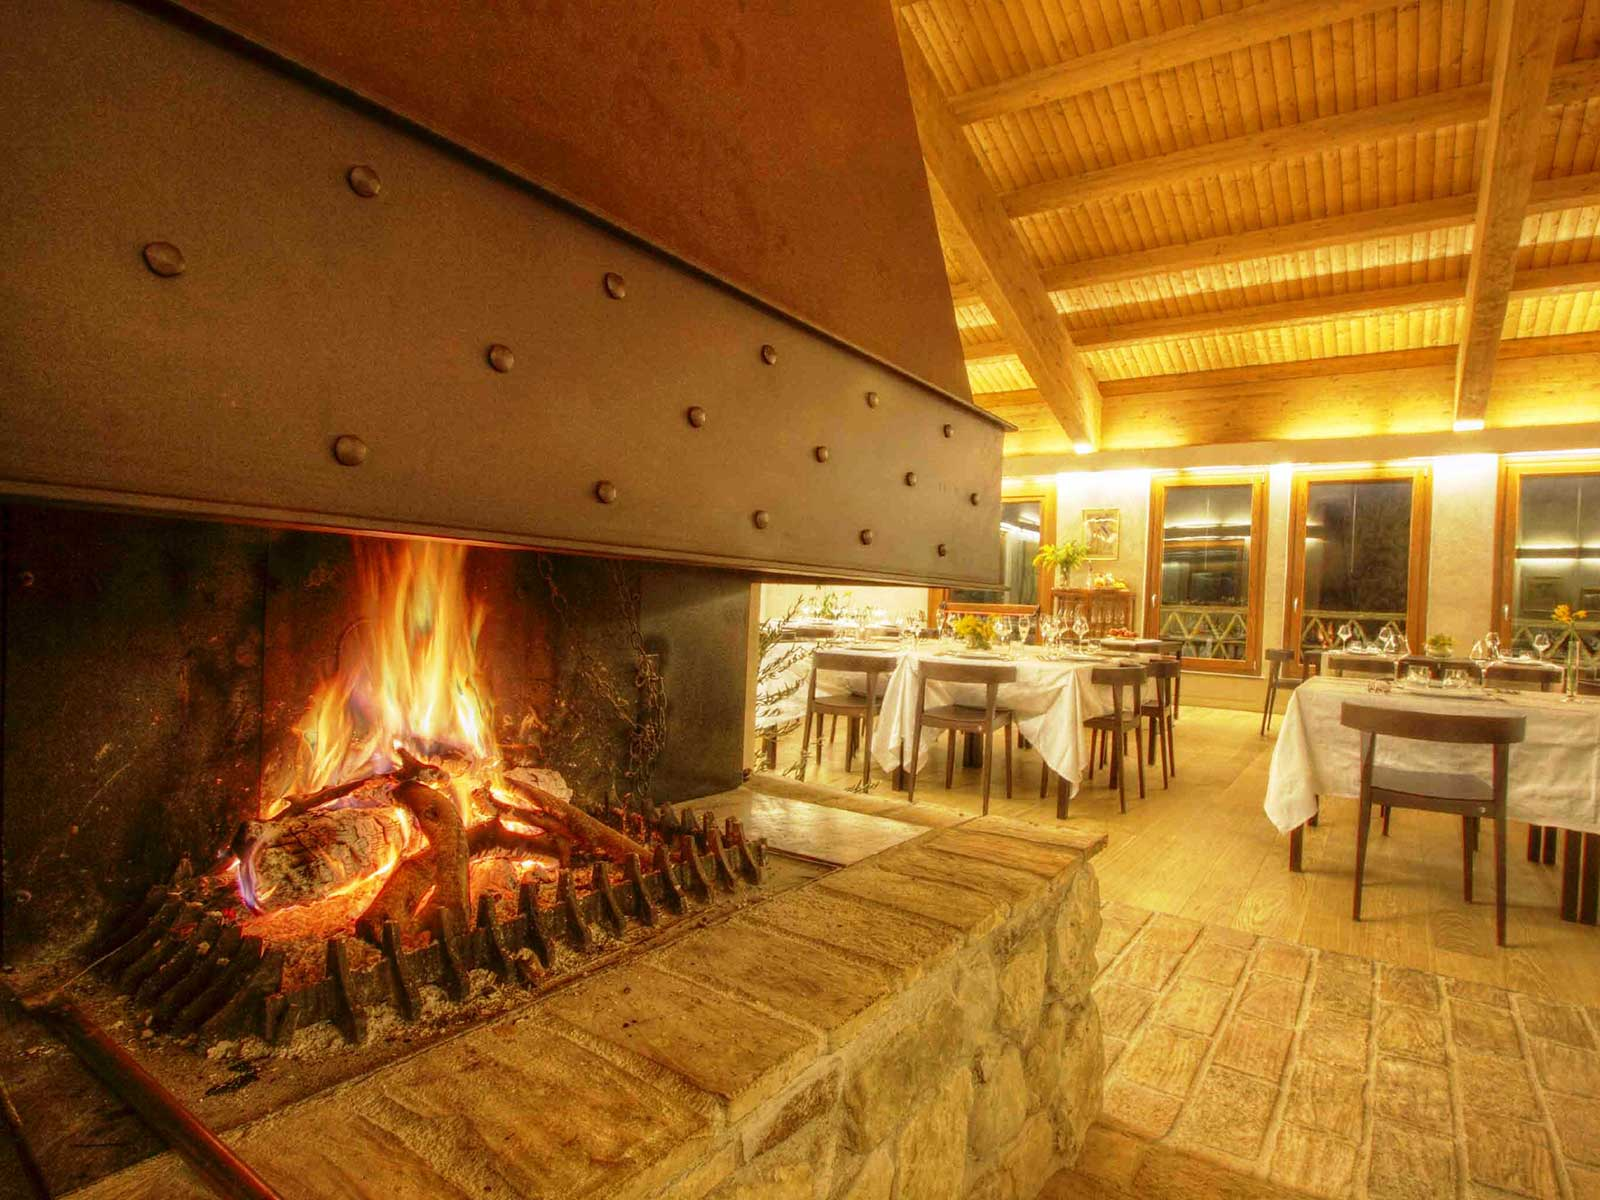 Country Houses Country Houses for sale Penne (PE), Casa Cignale - Penne - EUR 0 60